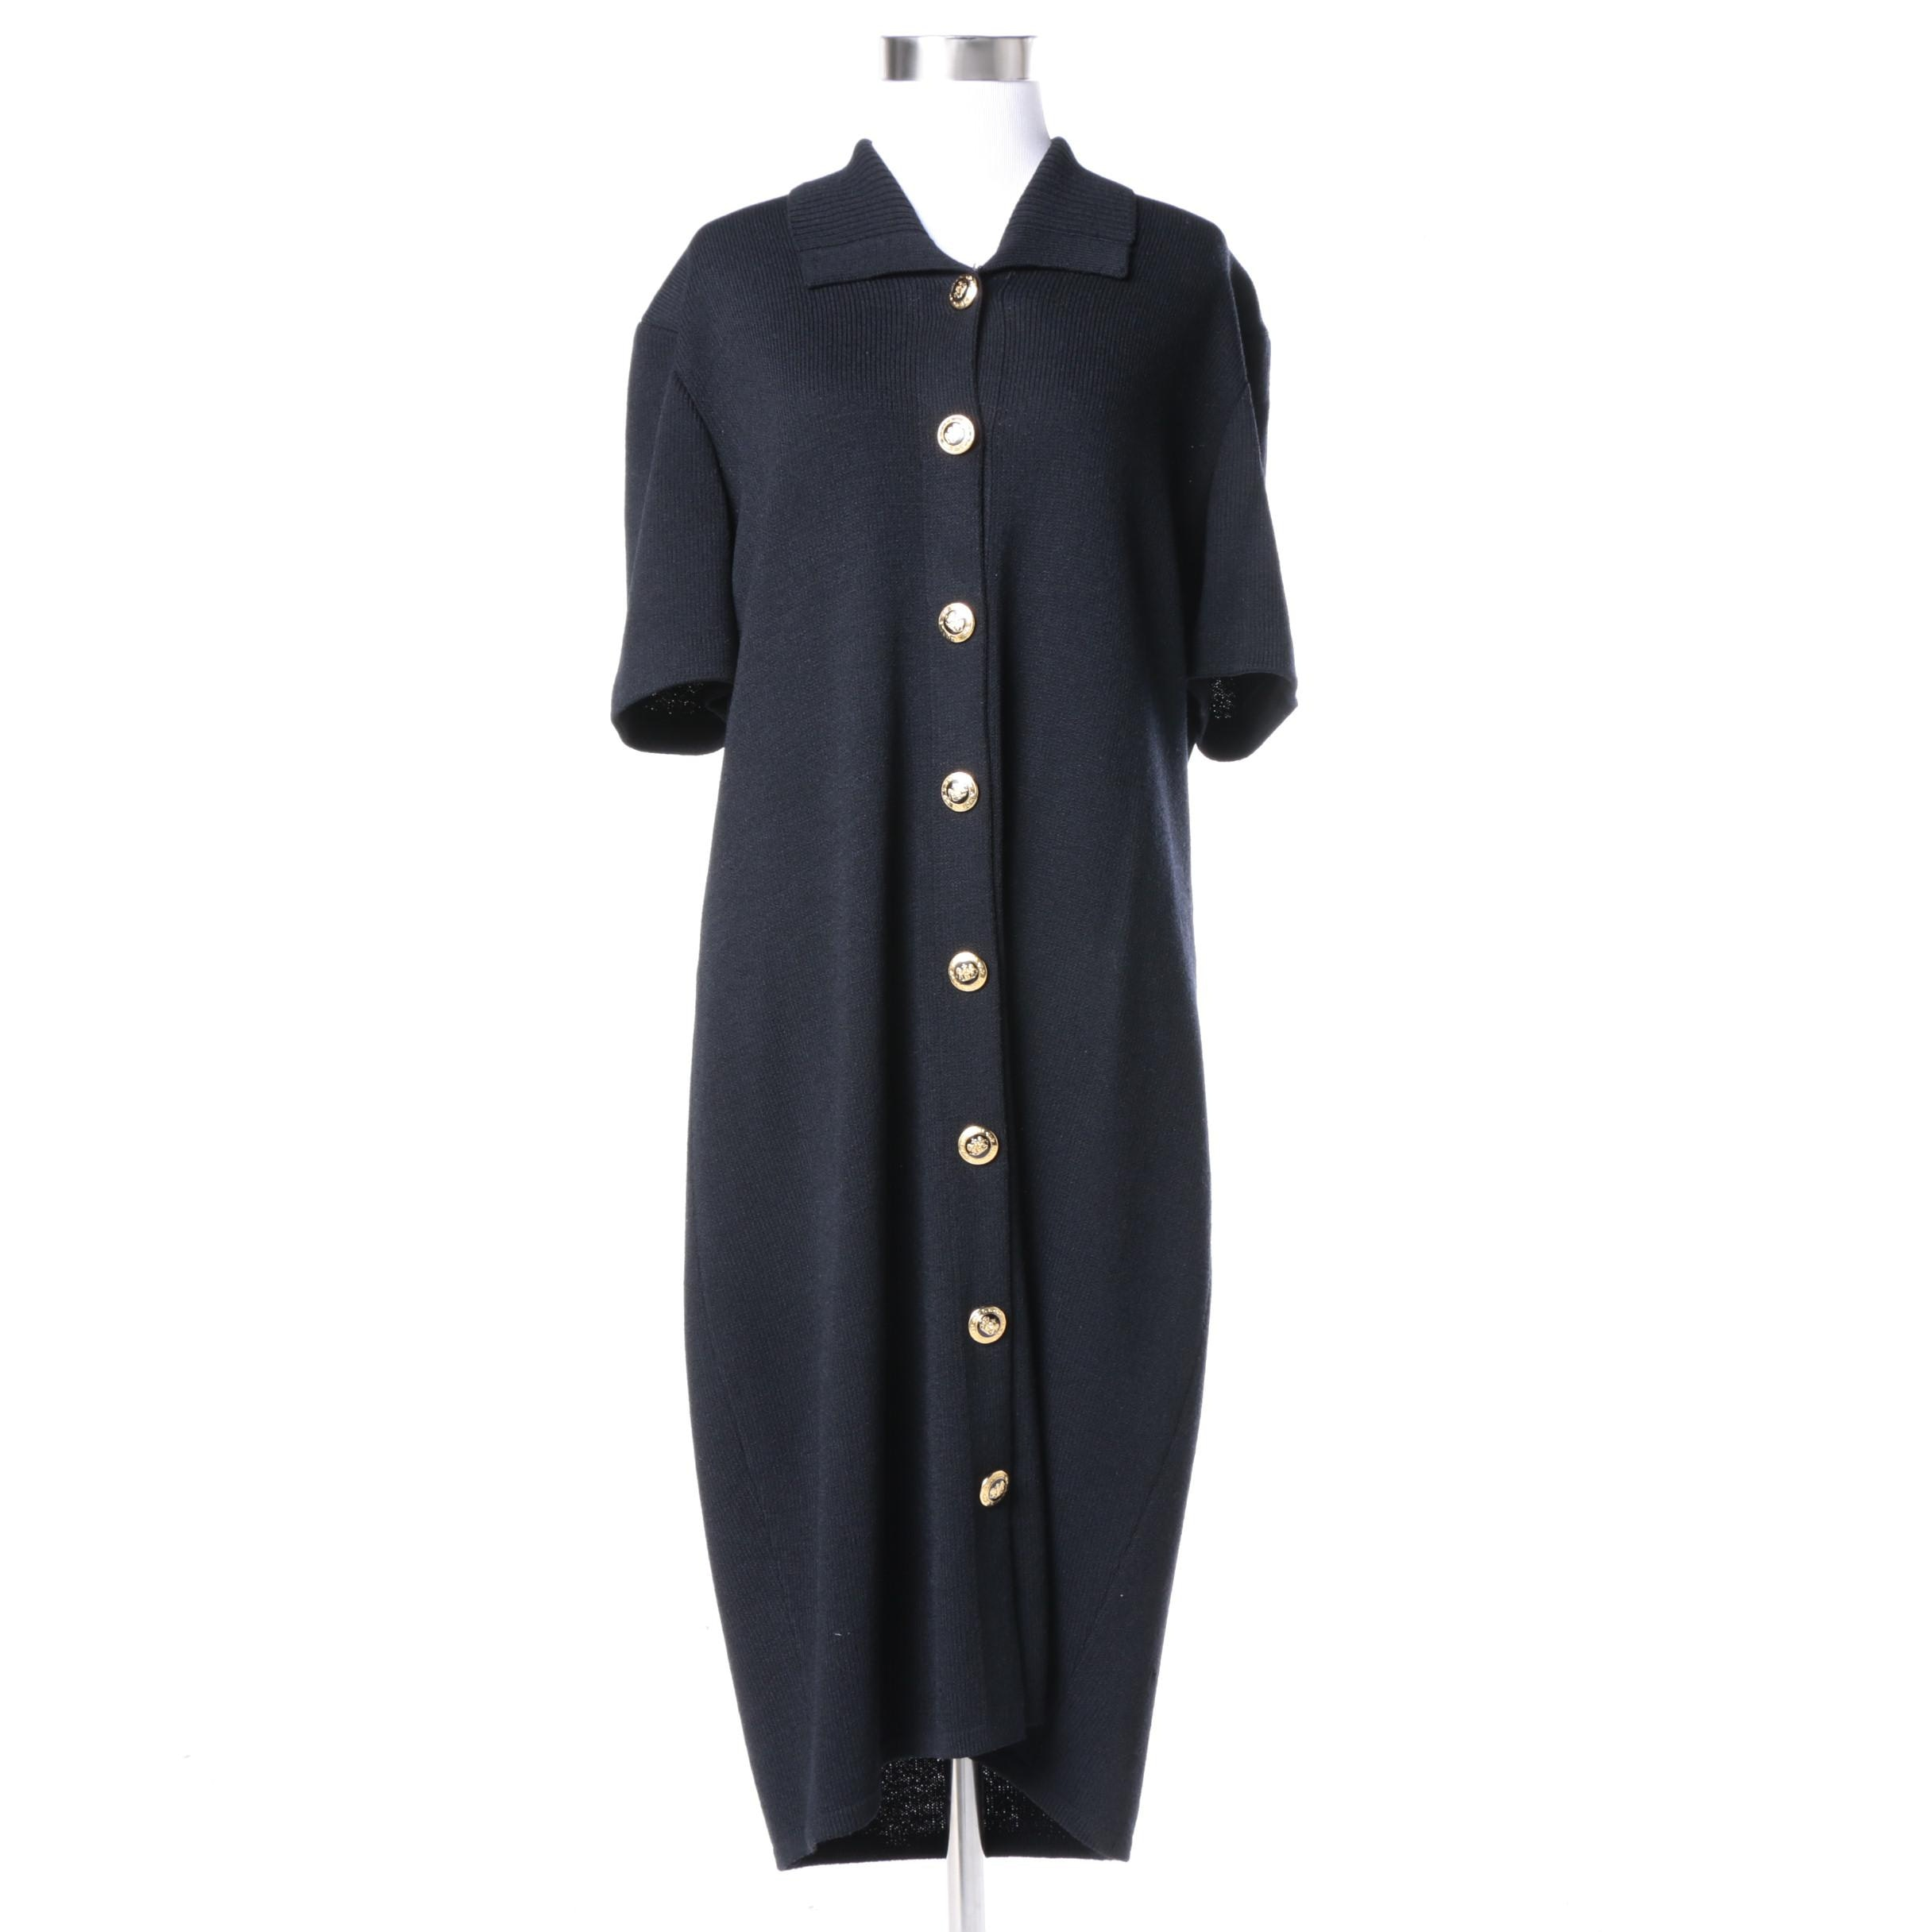 St. John Basics Black Knit Button-Up Dress